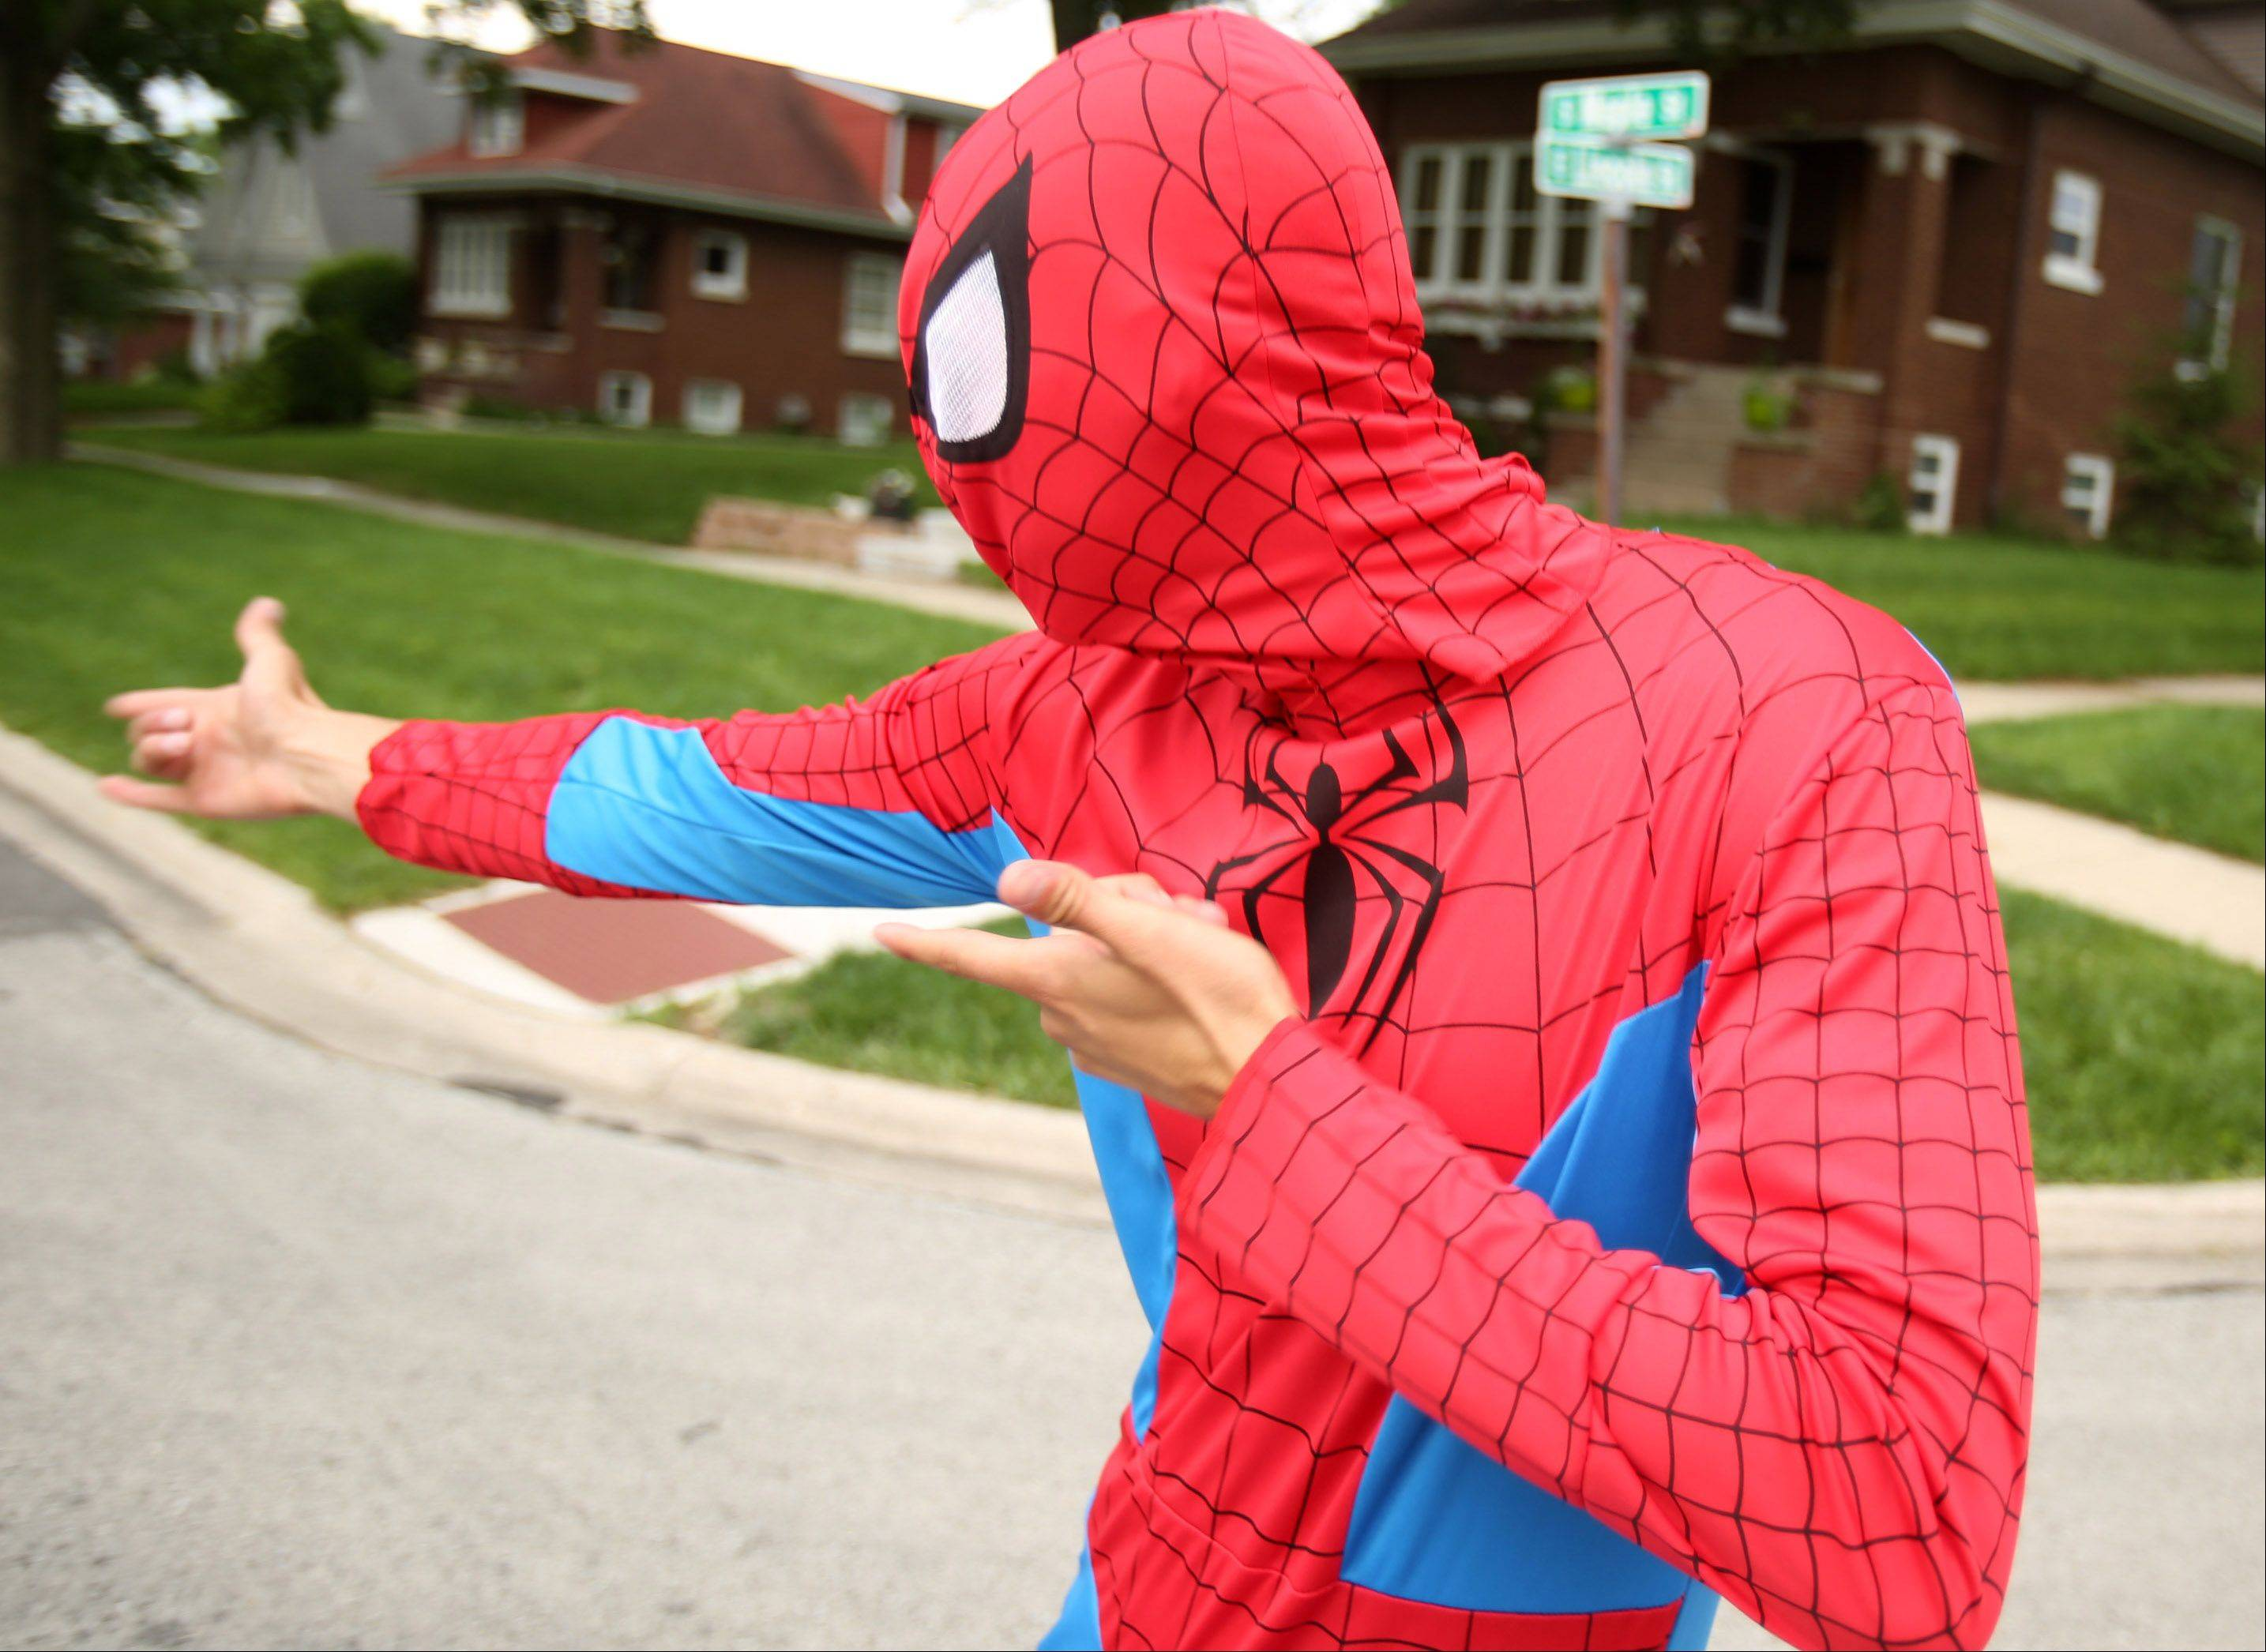 Pete Nocchi, a lifeguard with the Mount Prospect Park District, directs runners Saturday in the park district's Super 5K Run at Lions Memorial Park in Mount Prospect. Participants were encouraged to dress in their favorite superhero costumes.